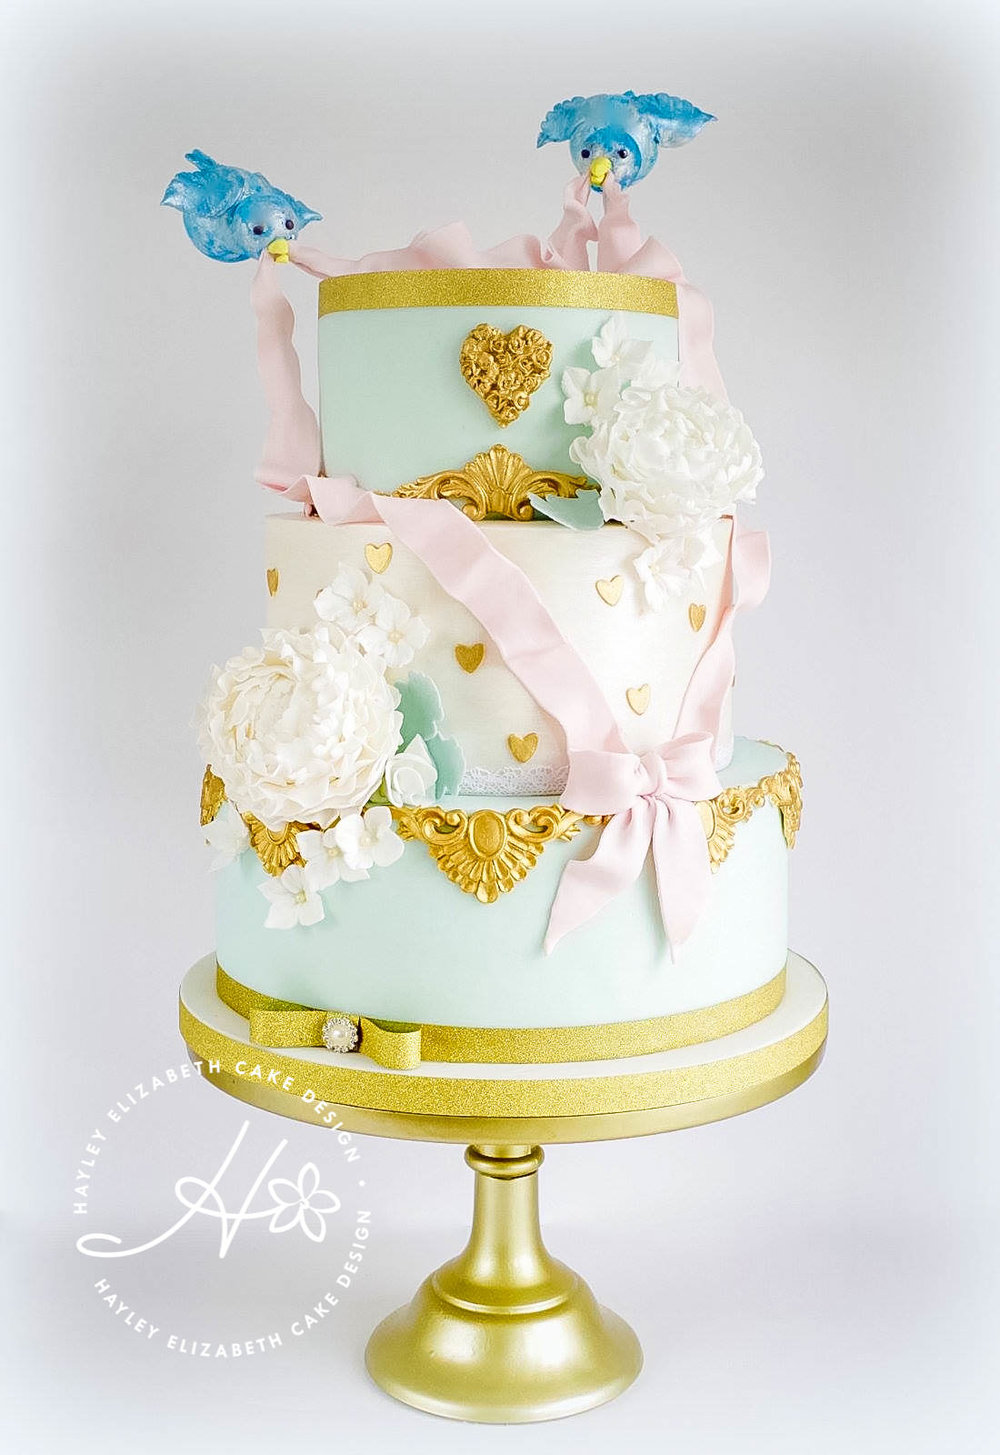 cinderella-wedding-cake.jpg